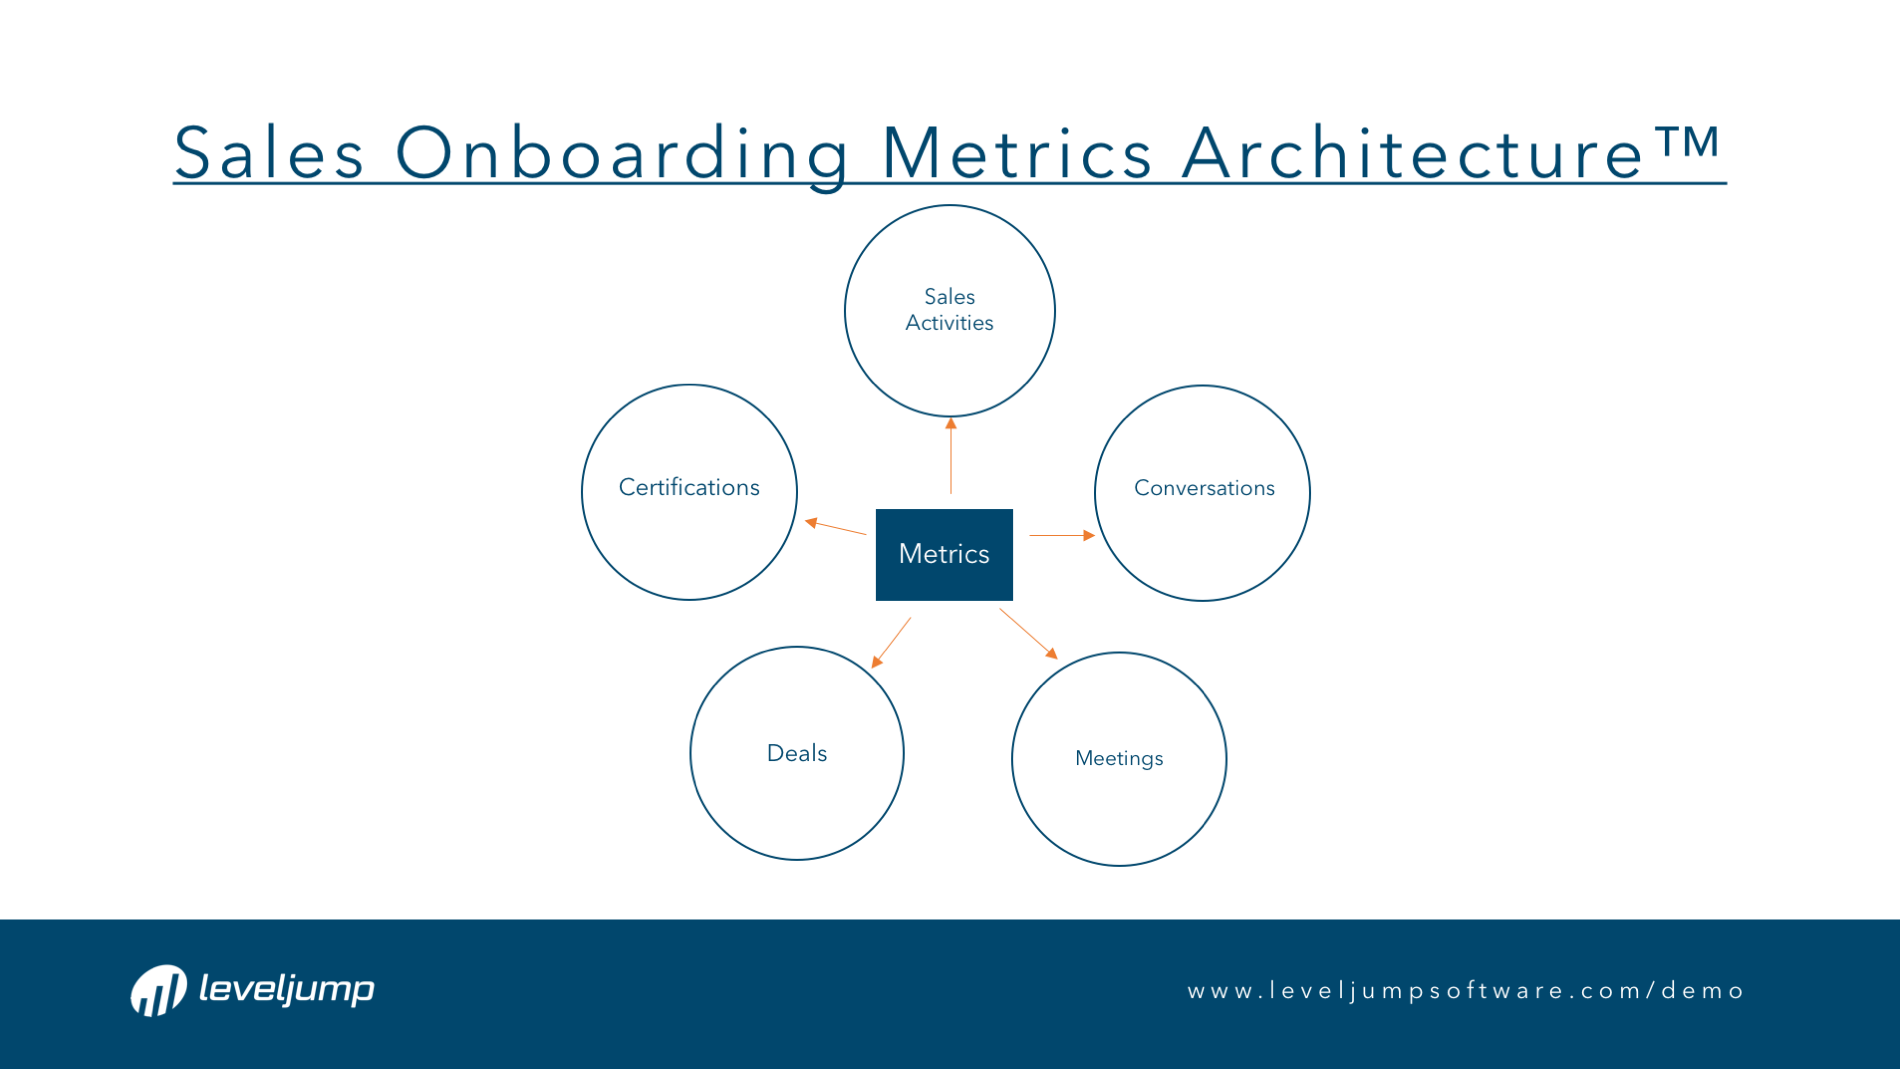 181001-Framework-Sales_Onboarding_Metrics_Architecture